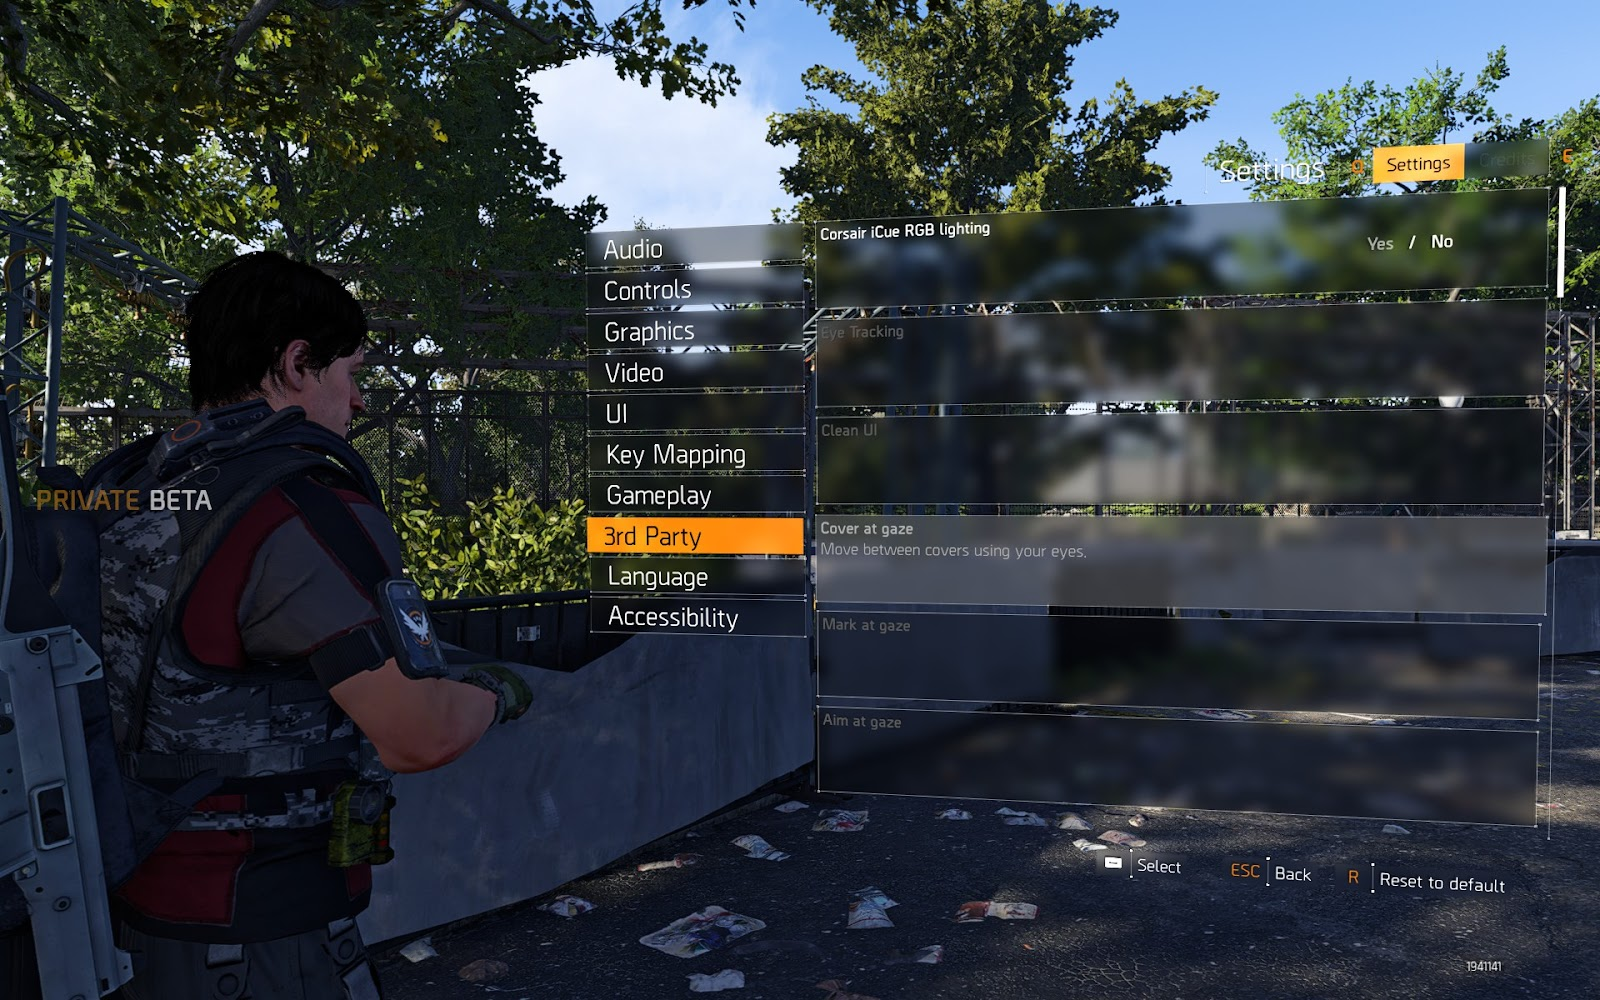 Options to control aim, grenade, enemy tagging and more using eye tracking hardware